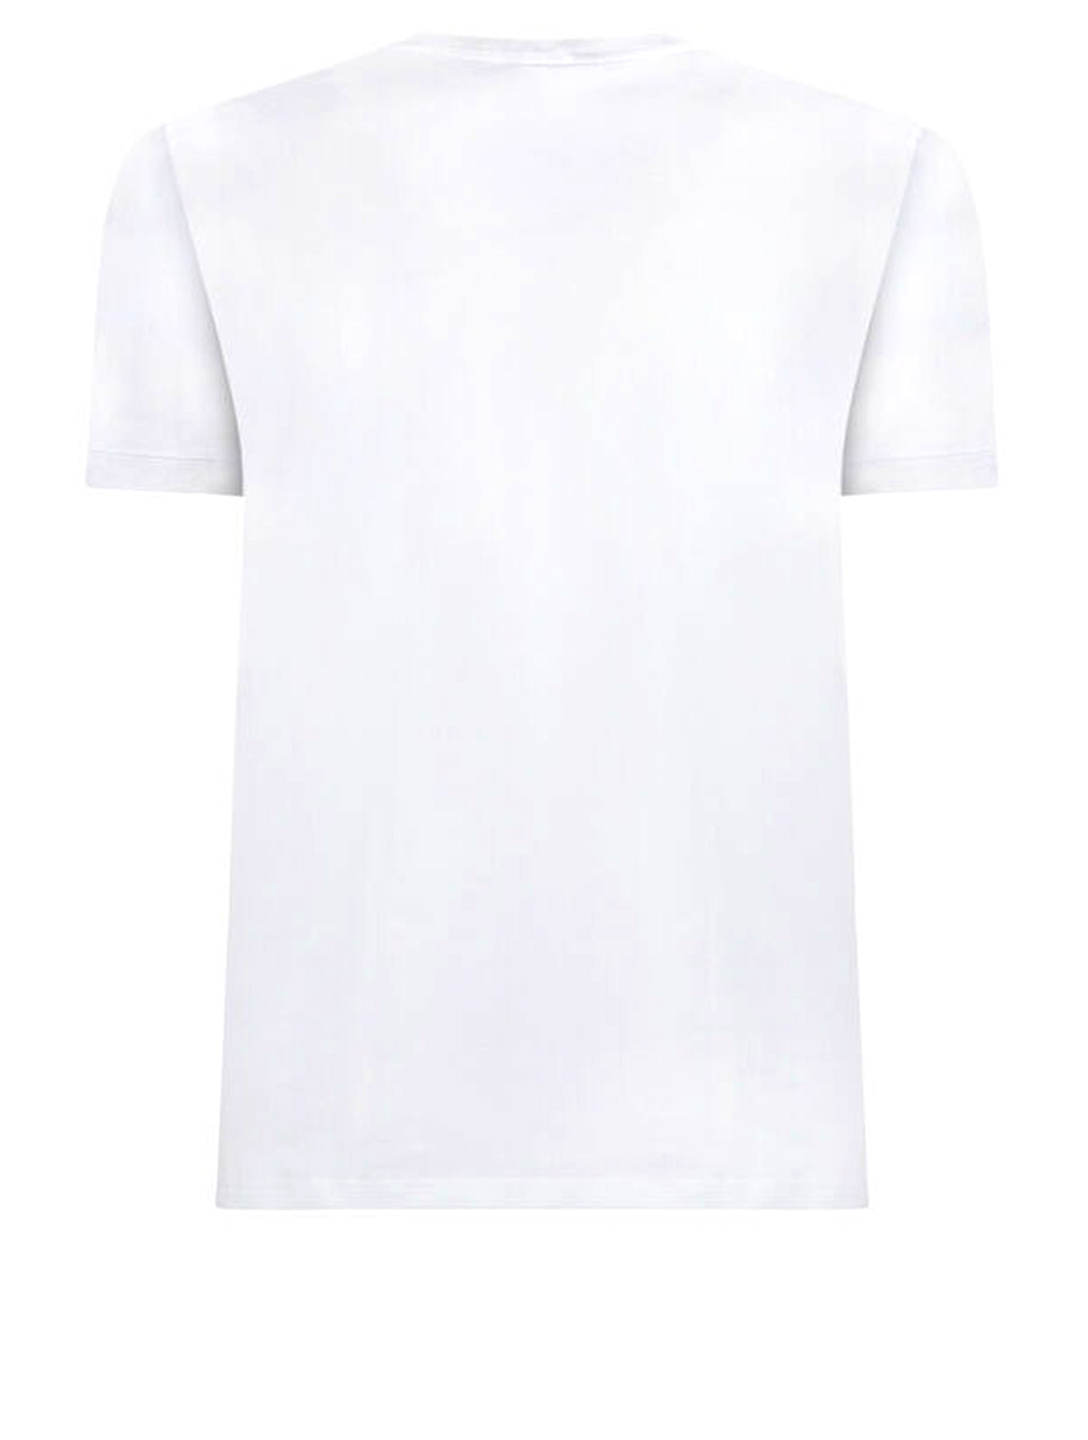 DOLCE & GABBANA Crewneck T-Shirt Men's White